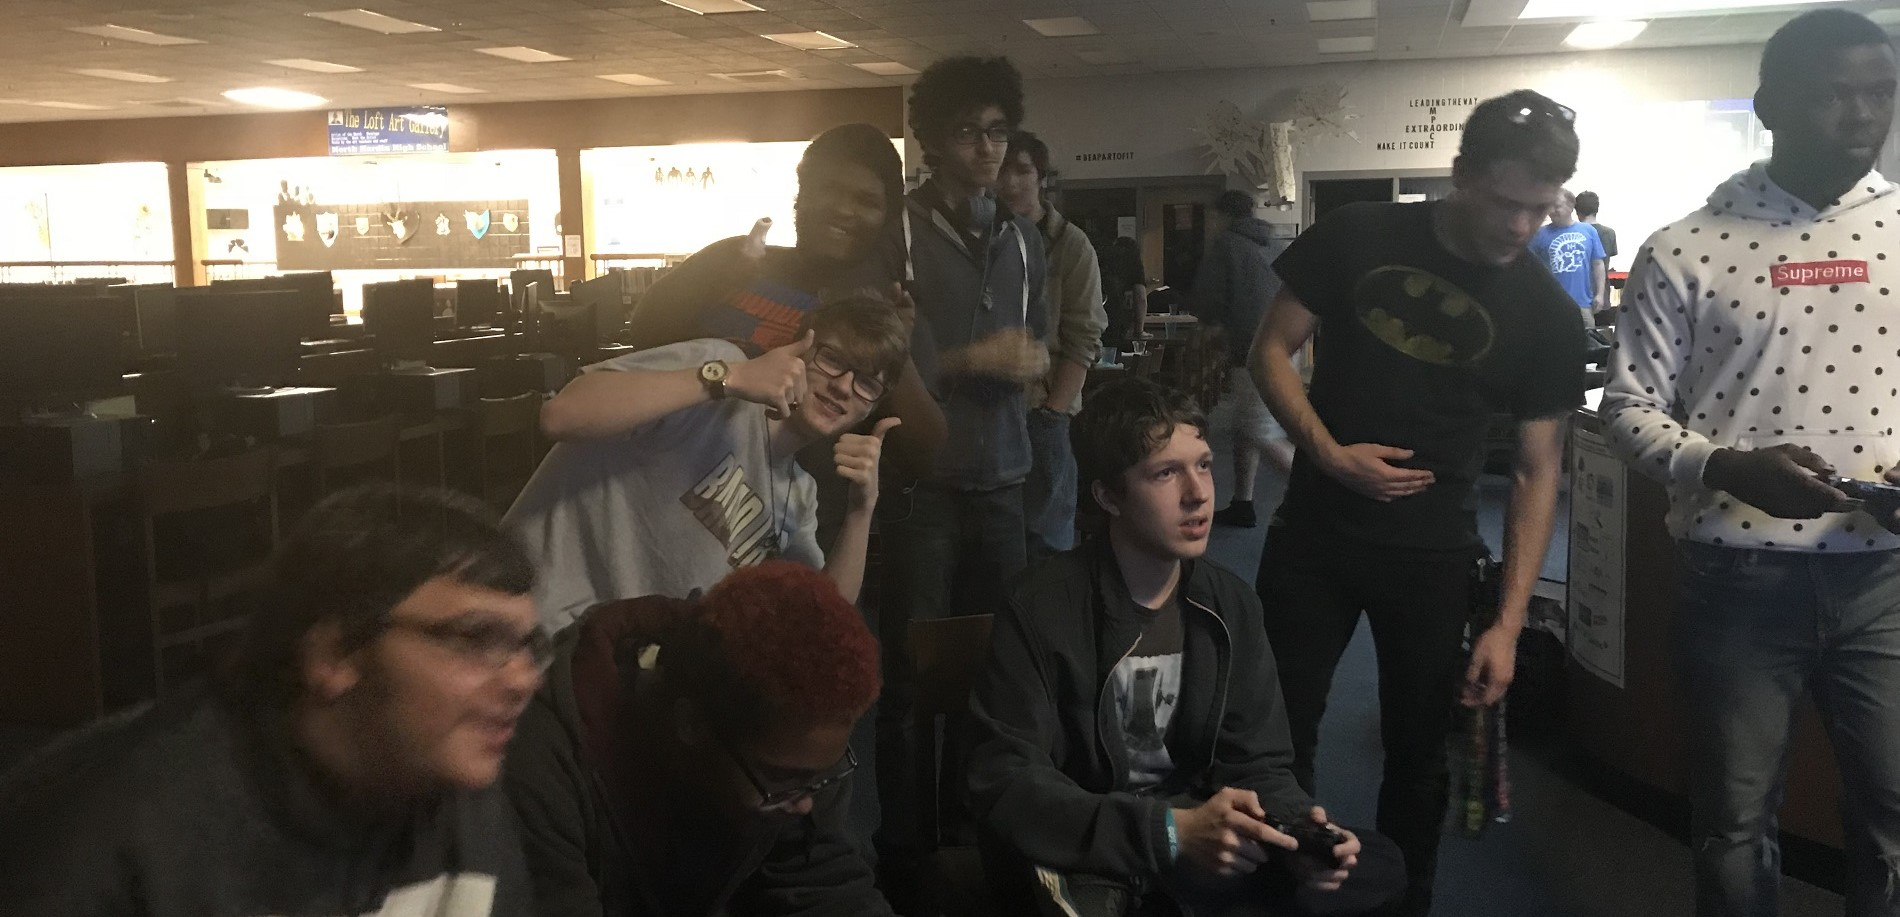 Smash Brothers at VG Tourney